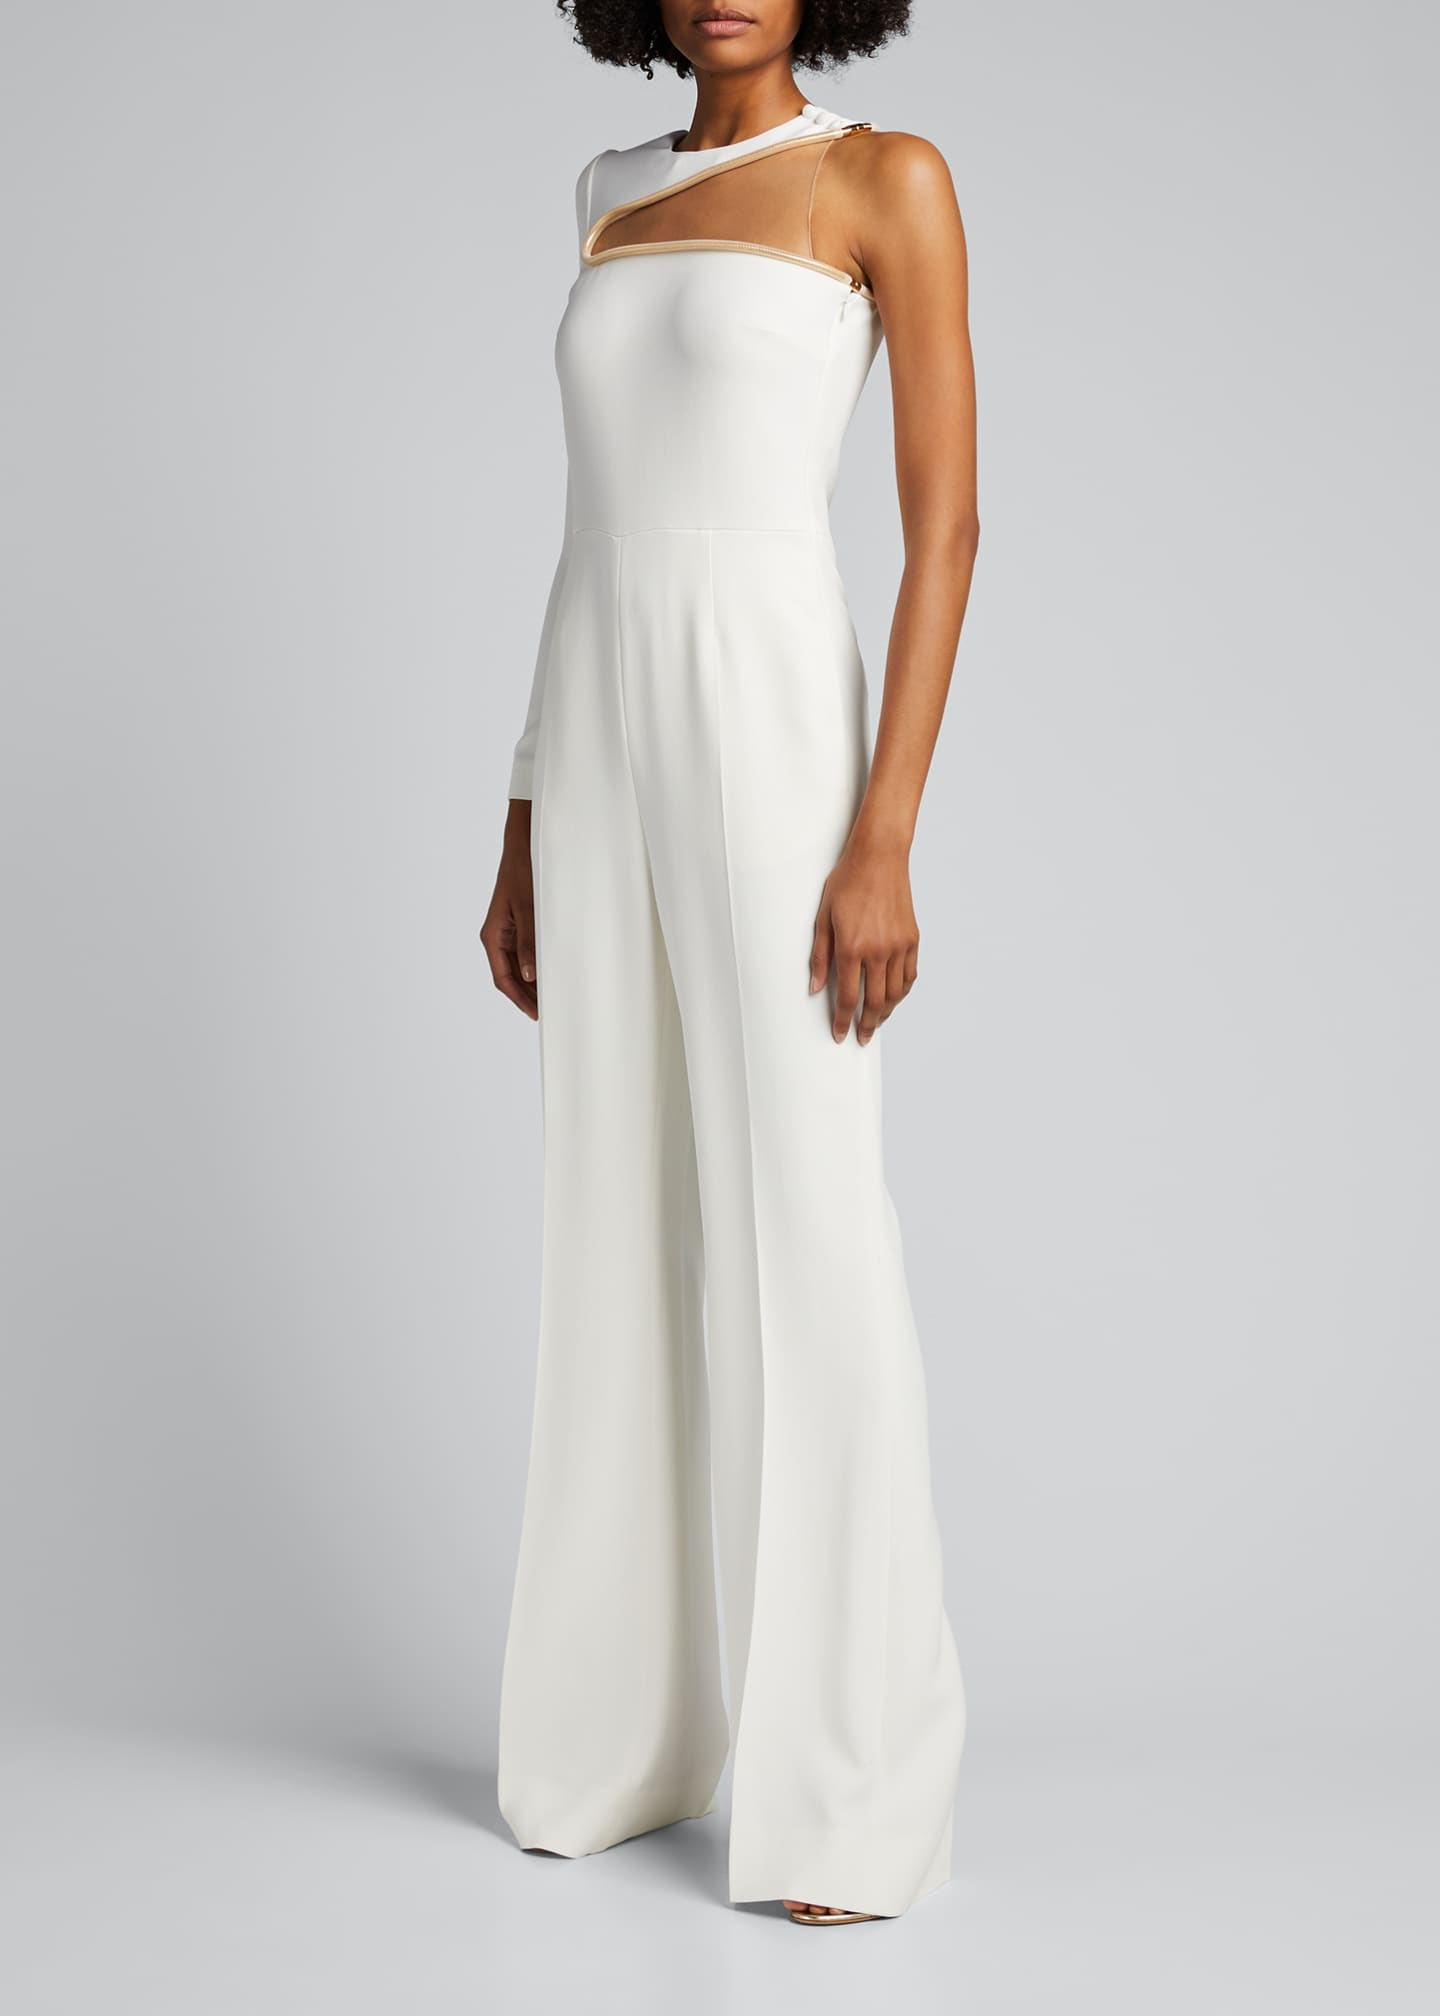 Image 1 of 5: Lyta One-Shoulder Illusion Jumpsuit